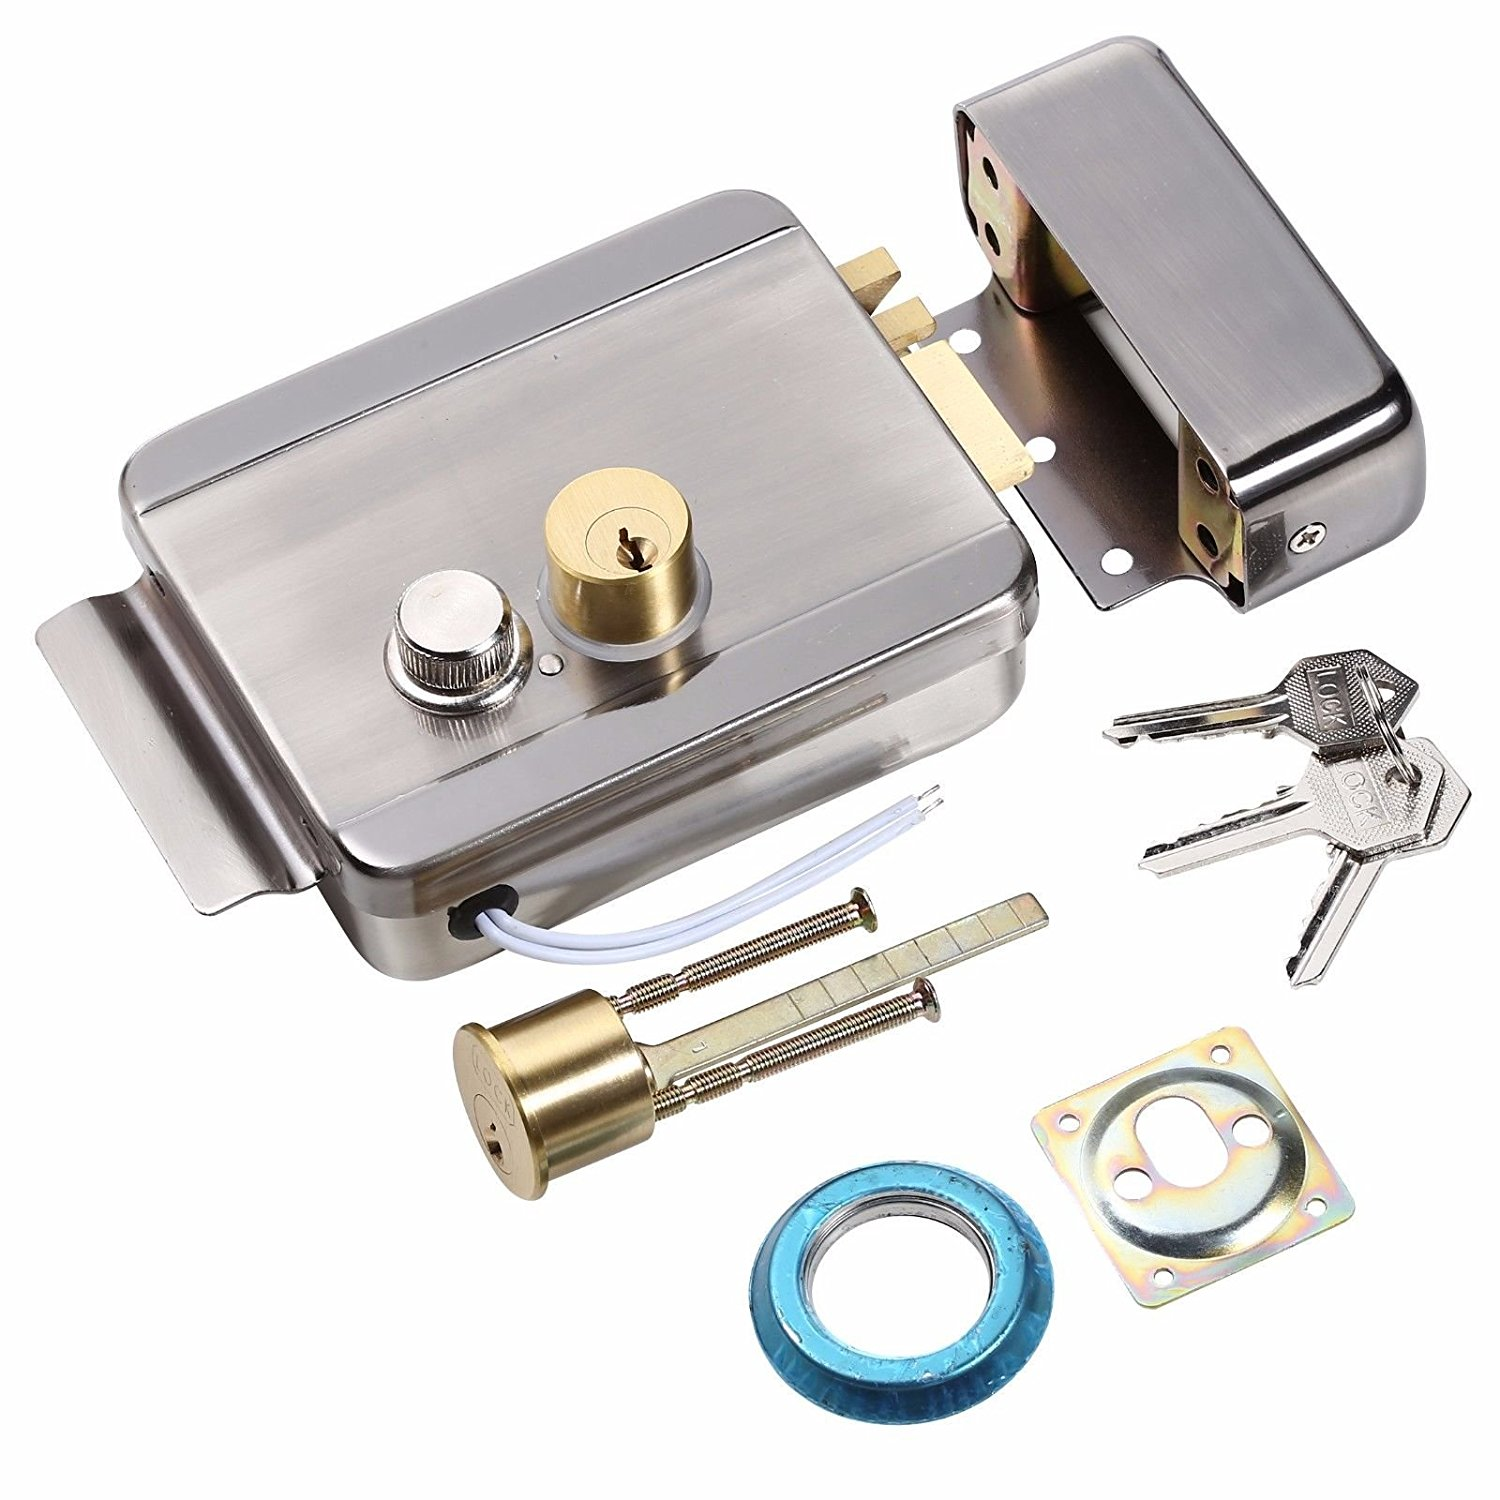 OBO HANDS Anti-theft Electric Control Release Rim Door Lock Fail Secure Stainless Steel obo hands ansi standard heavy duty electric strike lock fail secure no mode for wooden metal pvc door